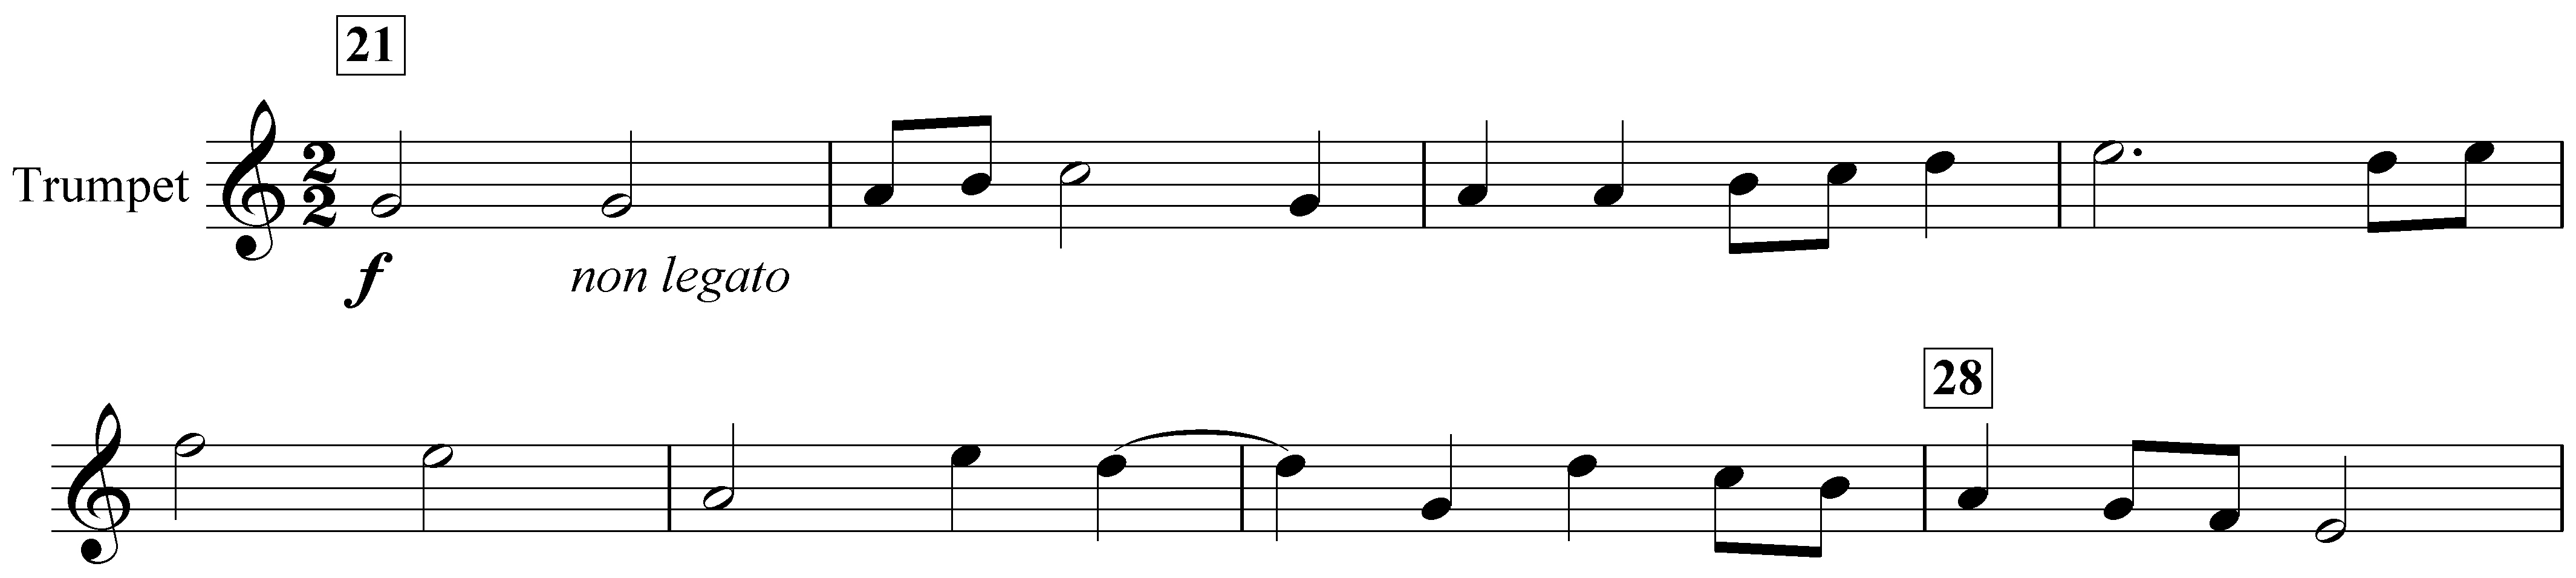 Example 2. Nottingham Symphony: Fourth movement, bars 21–28. First subject in trumpet